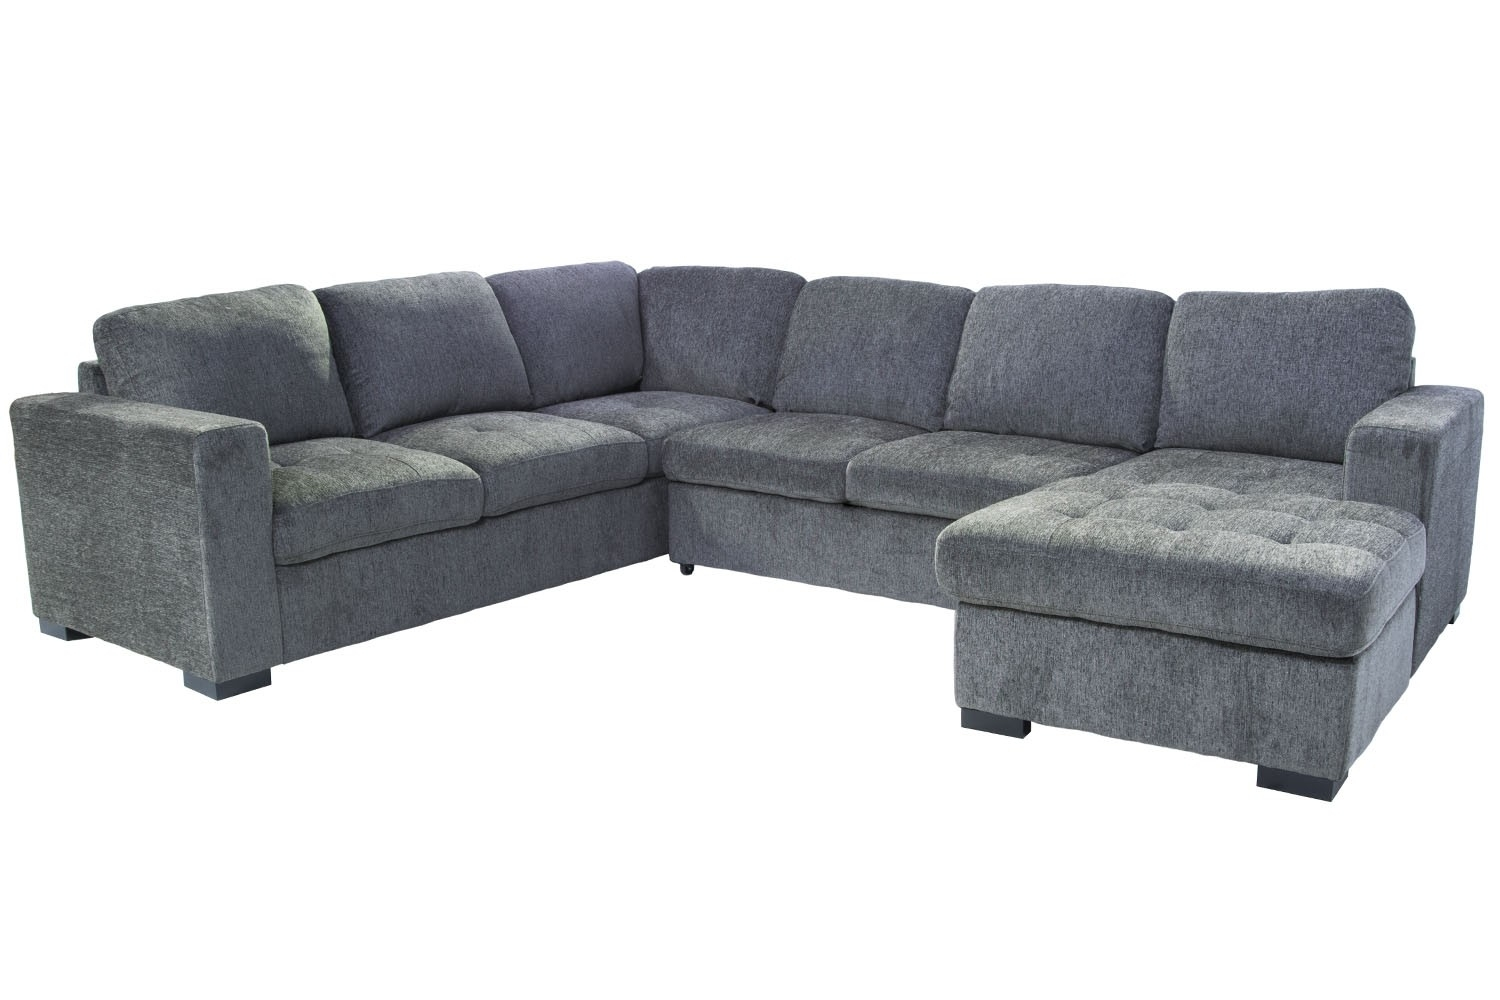 Sectional Sofas | Save Mor Online And In Store Intended For Aspen 2 Piece Sleeper Sectionals With Laf Chaise (Image 22 of 25)